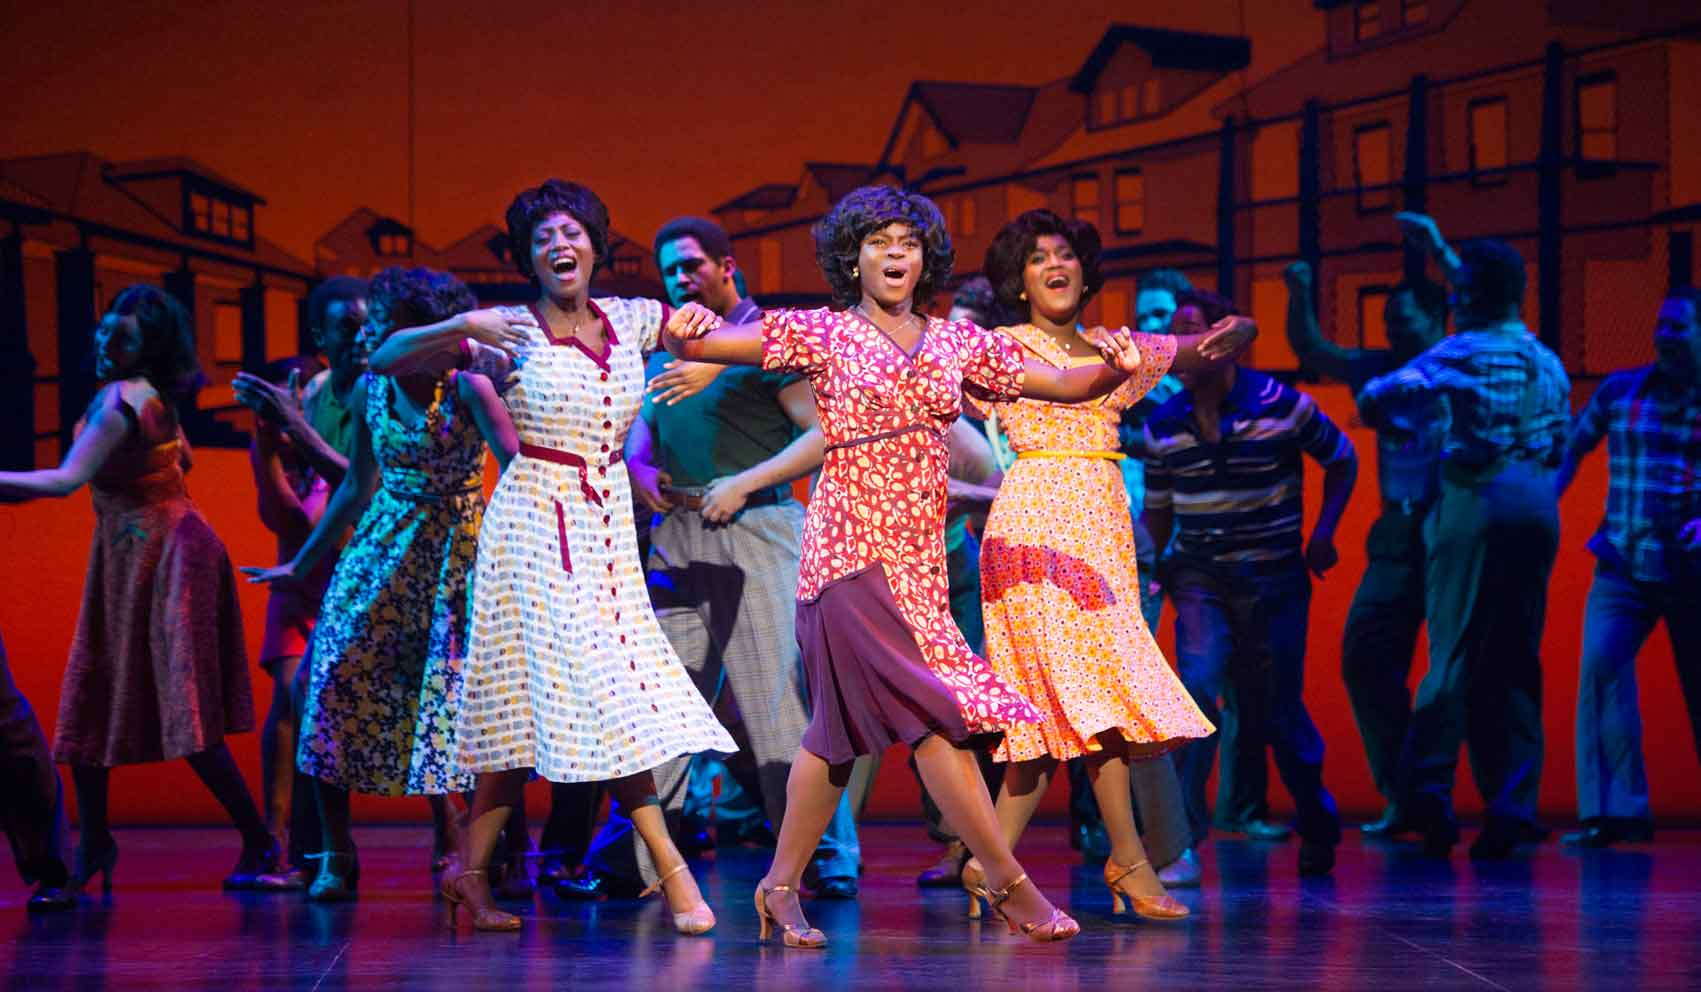 l-r Keisha Amponsa Banson, Aisha Jawando, Cleopatra Rey as Martha Reeves and the Vandellas in Motown the Musical. Photo: Alastair Muir | First Look: Motown the Musical